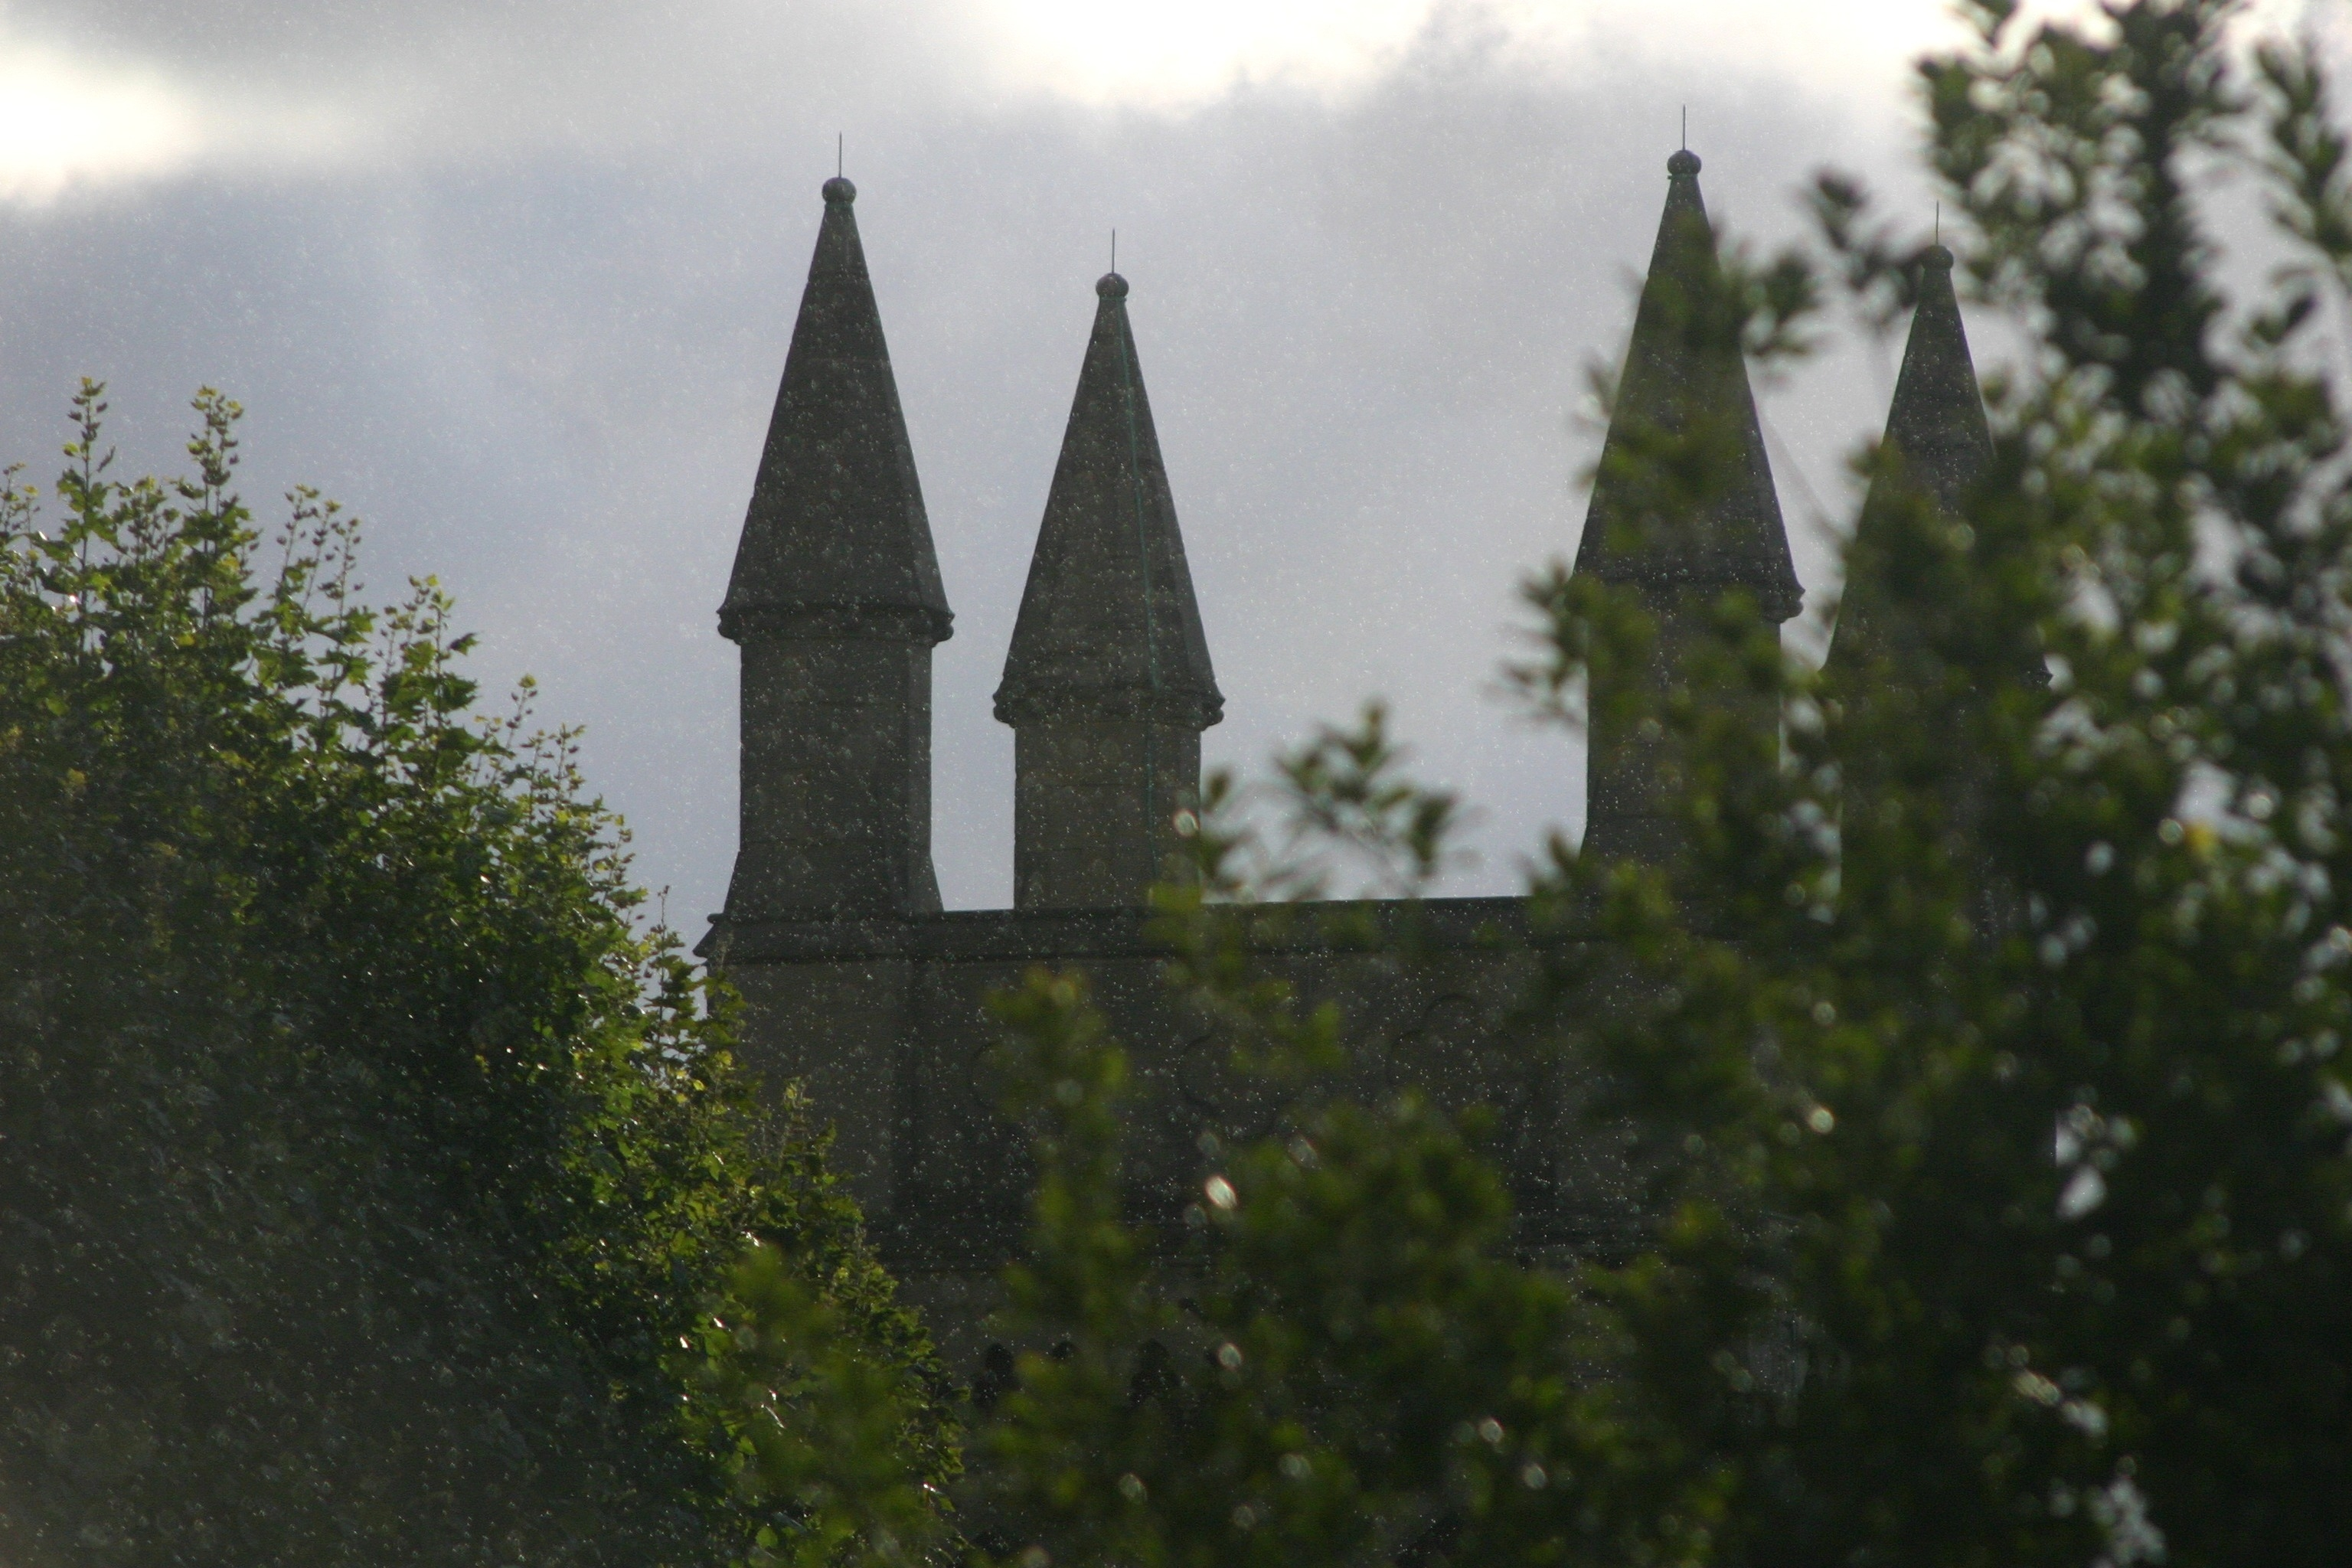 Rain falling in front of a church, 300mm lens